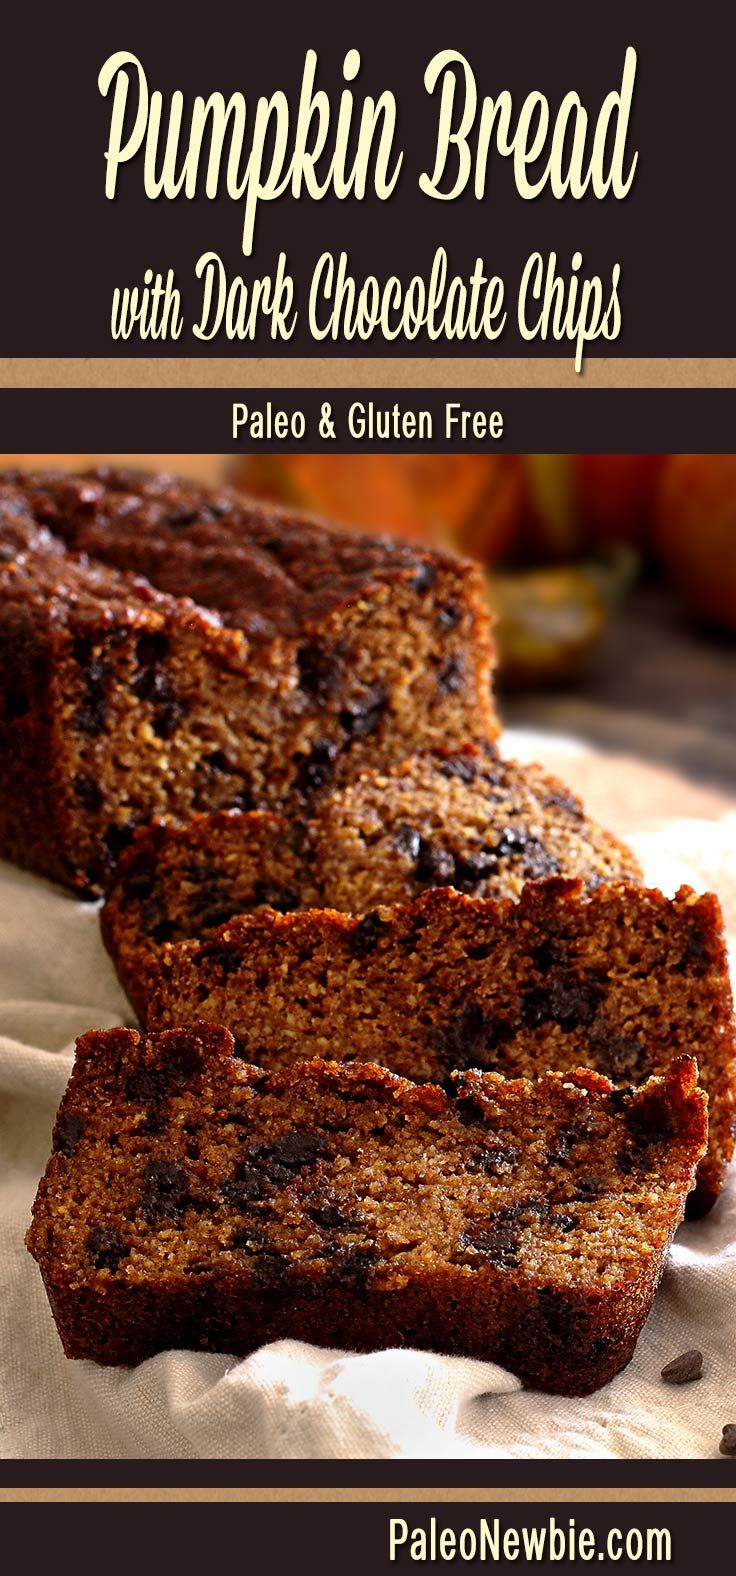 Rich pumpkin taste, moist and delicious, with dark mini chocolate chips…incredibly good and easy to make! (For strict paleo, substitute nuts for the chips.) #paleo #glutenfree